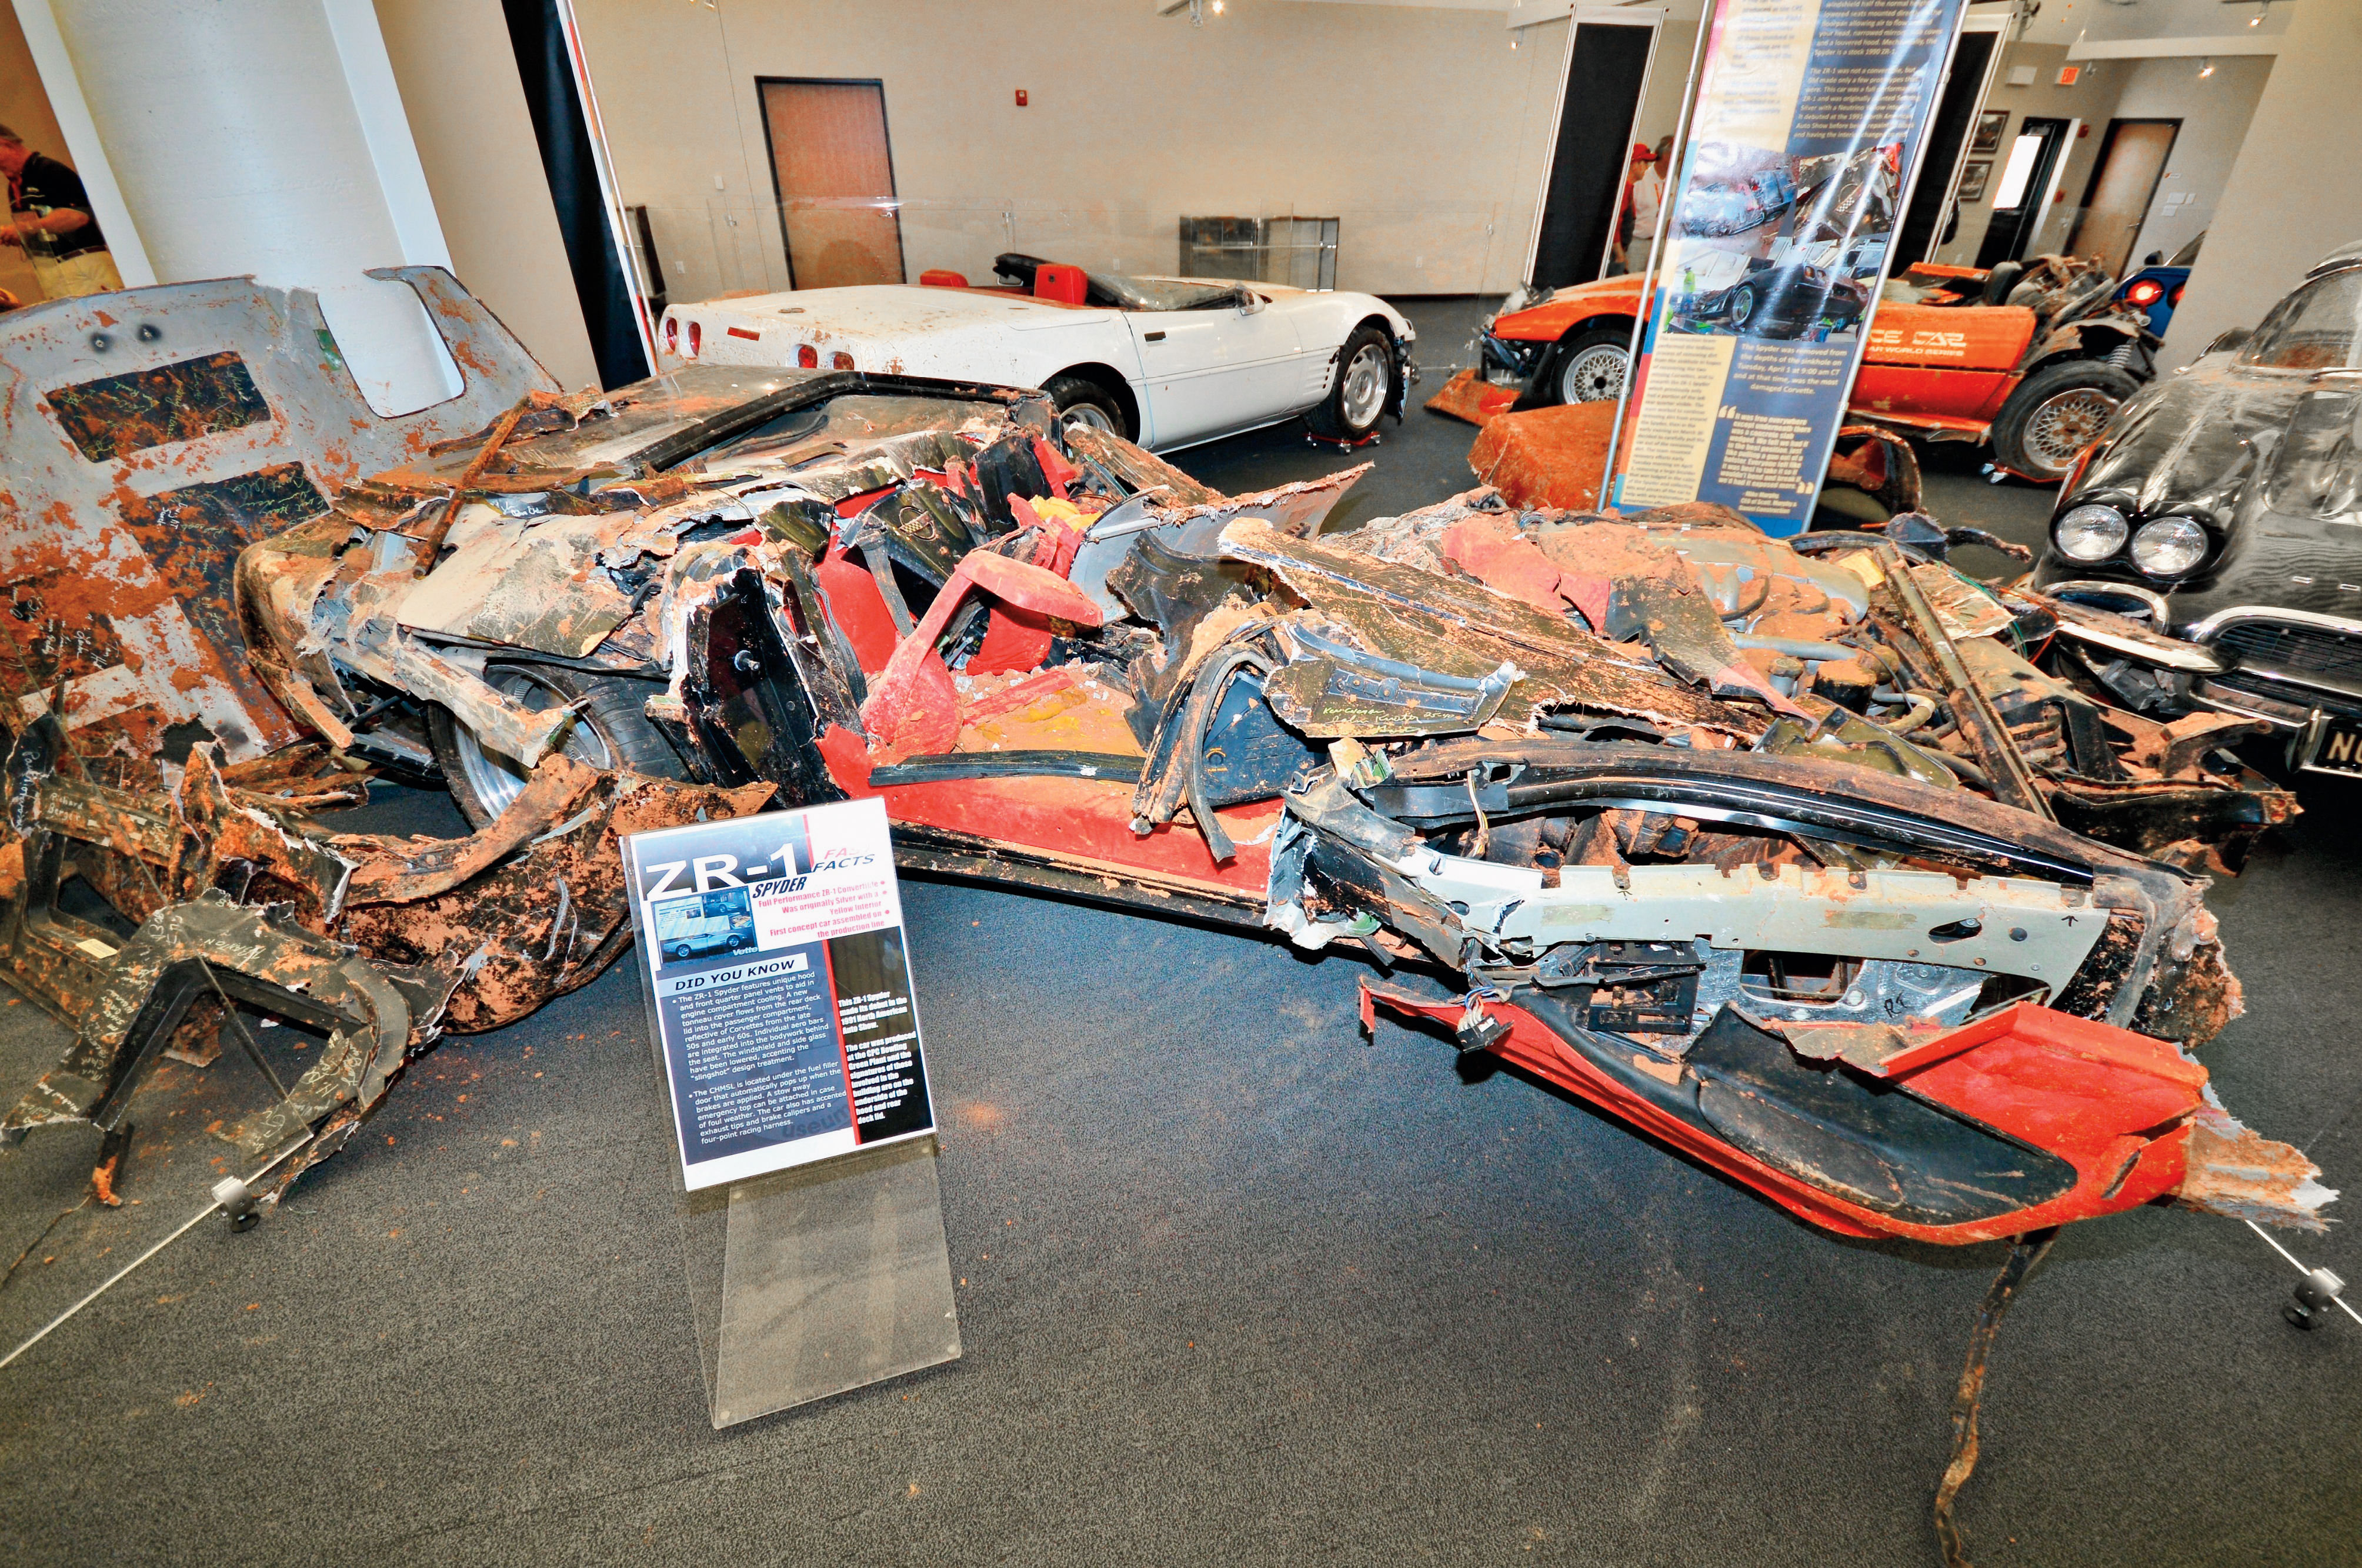 This is how the ZR-1 Spyder looked with it arrived at the Bowling Green assembly plant to be refurbished. Notice some of the discarded body parts in the background.